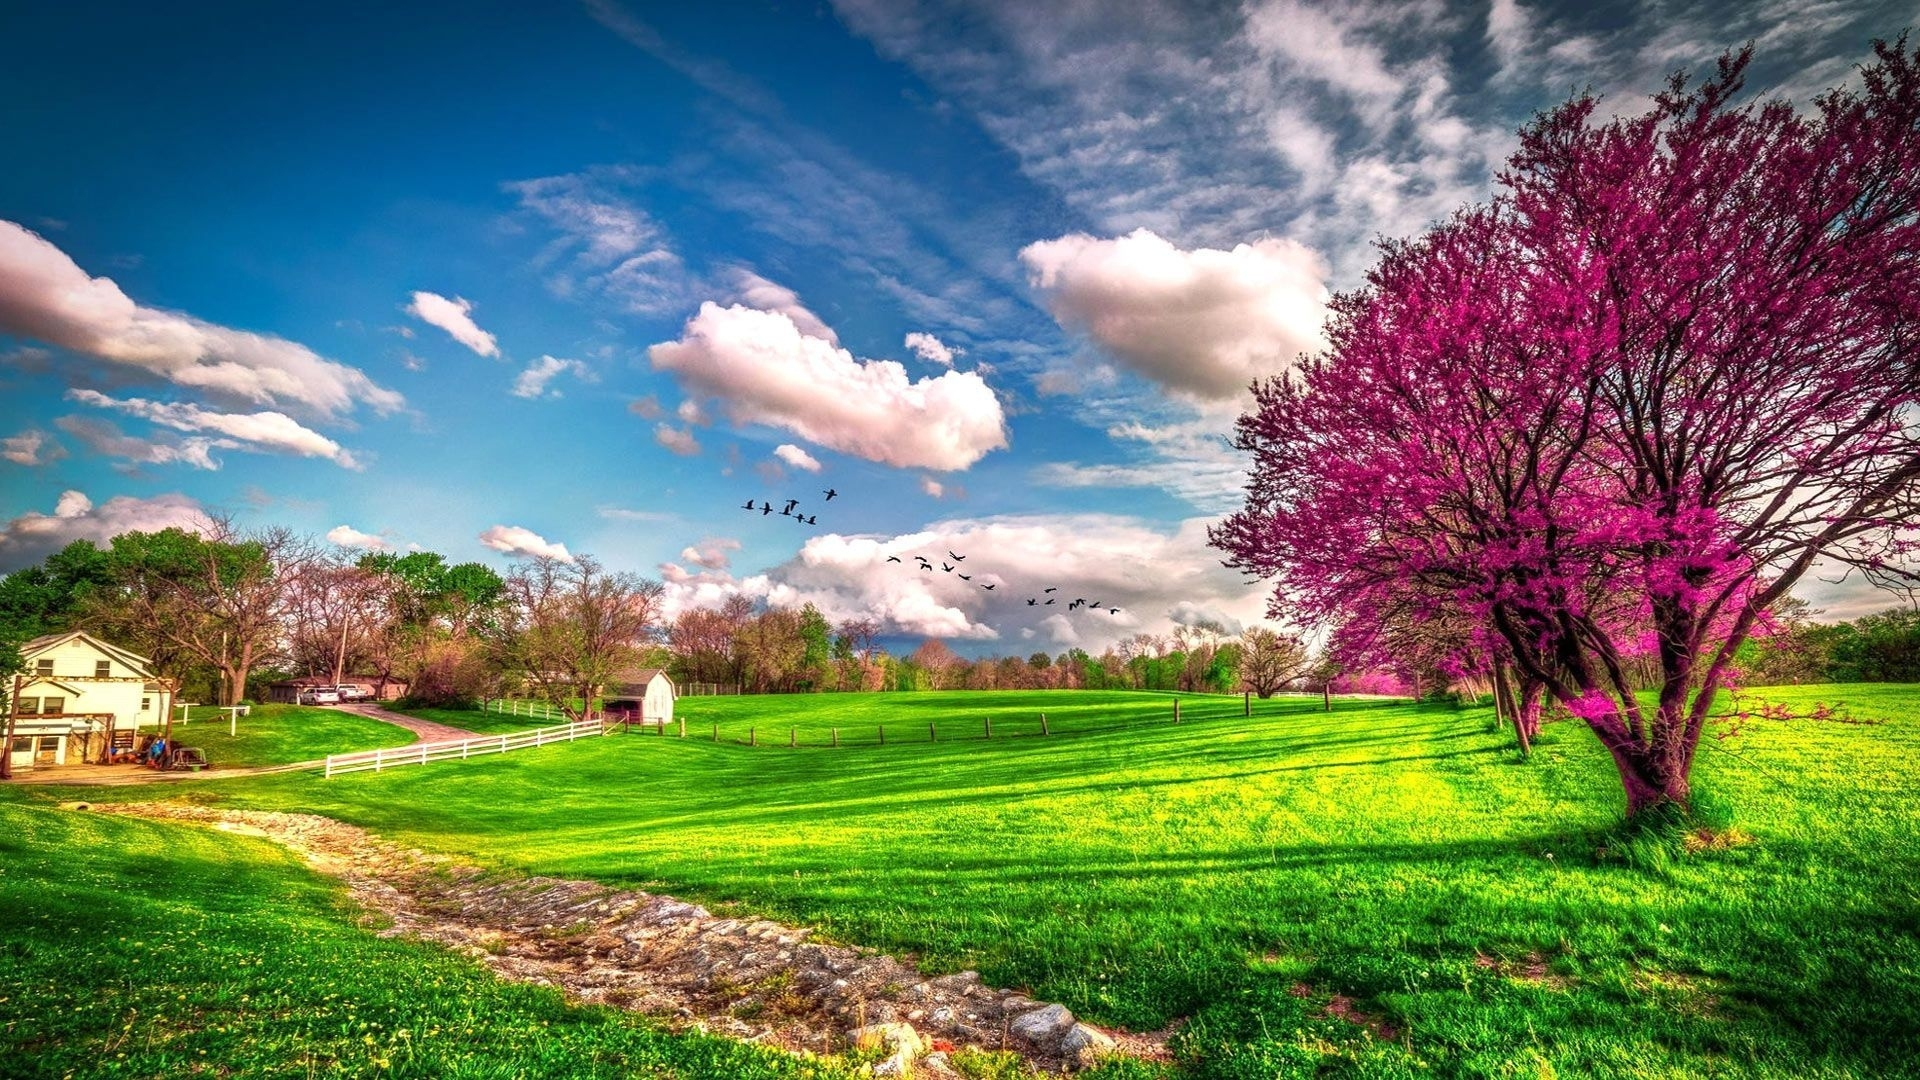 spring scenery wallpapers group (71+)